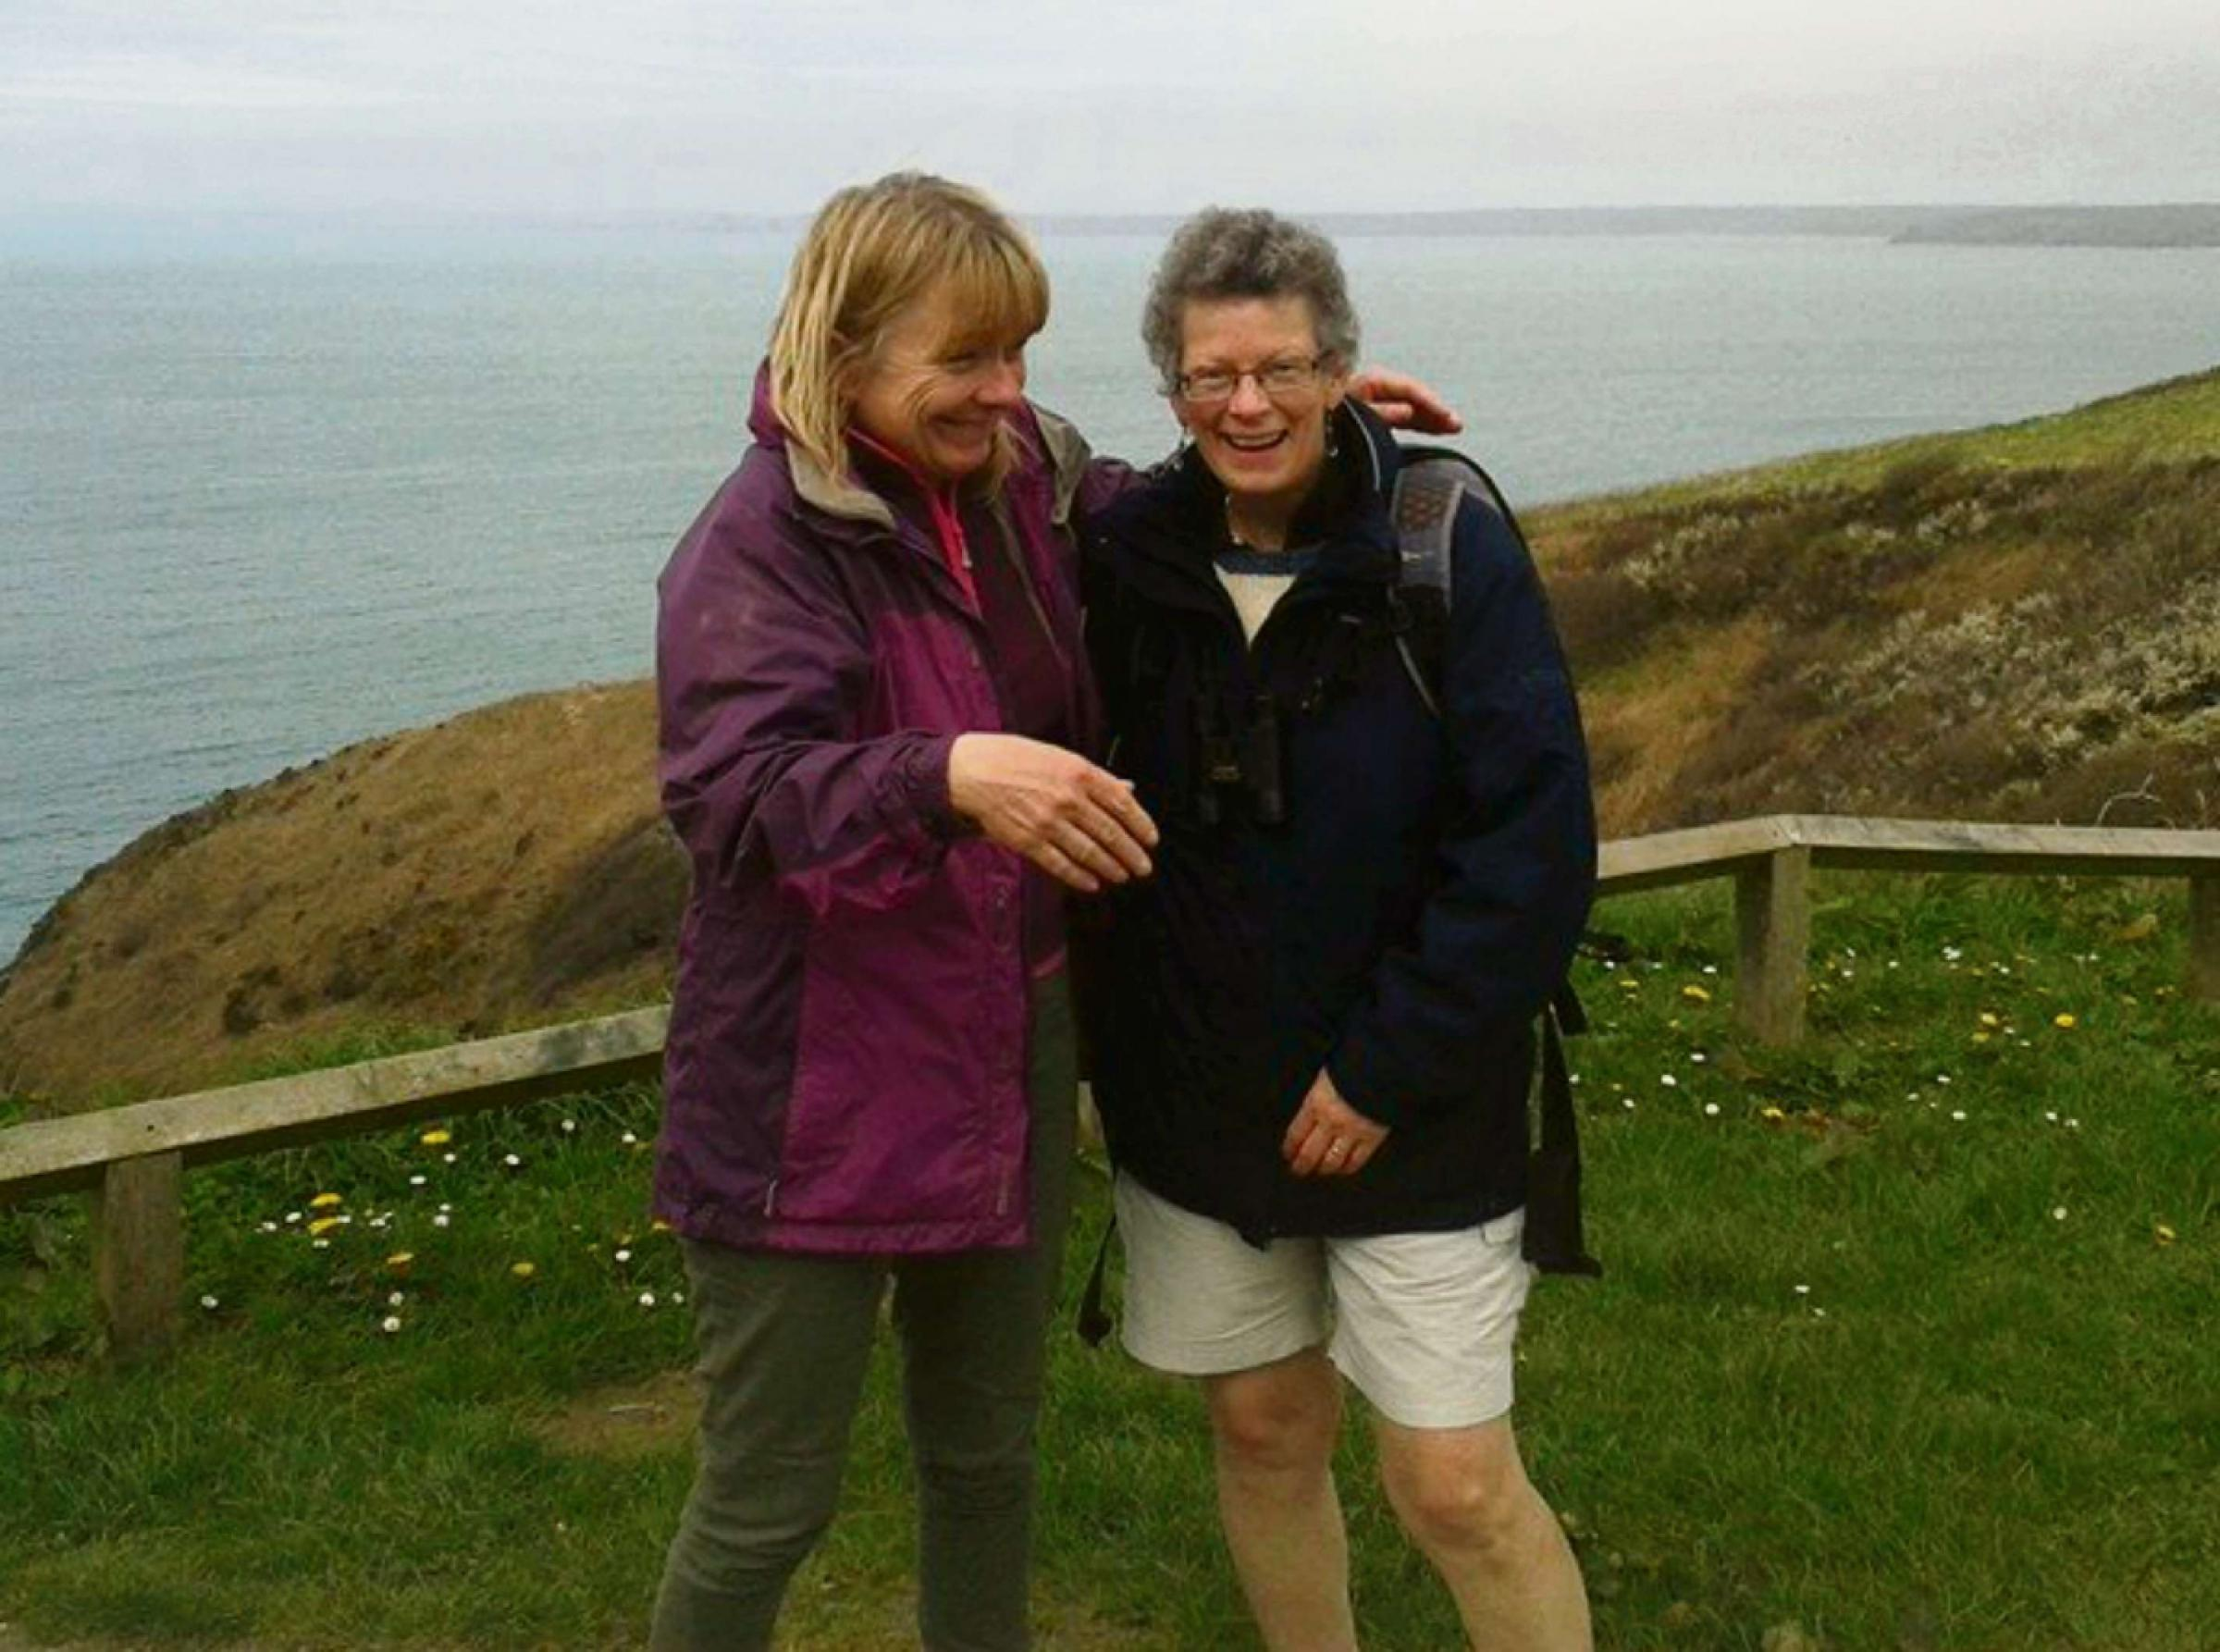 FRIENDSHIP WALK: Alison and Lyn will be walking the coast path in memory of Helen Durham.